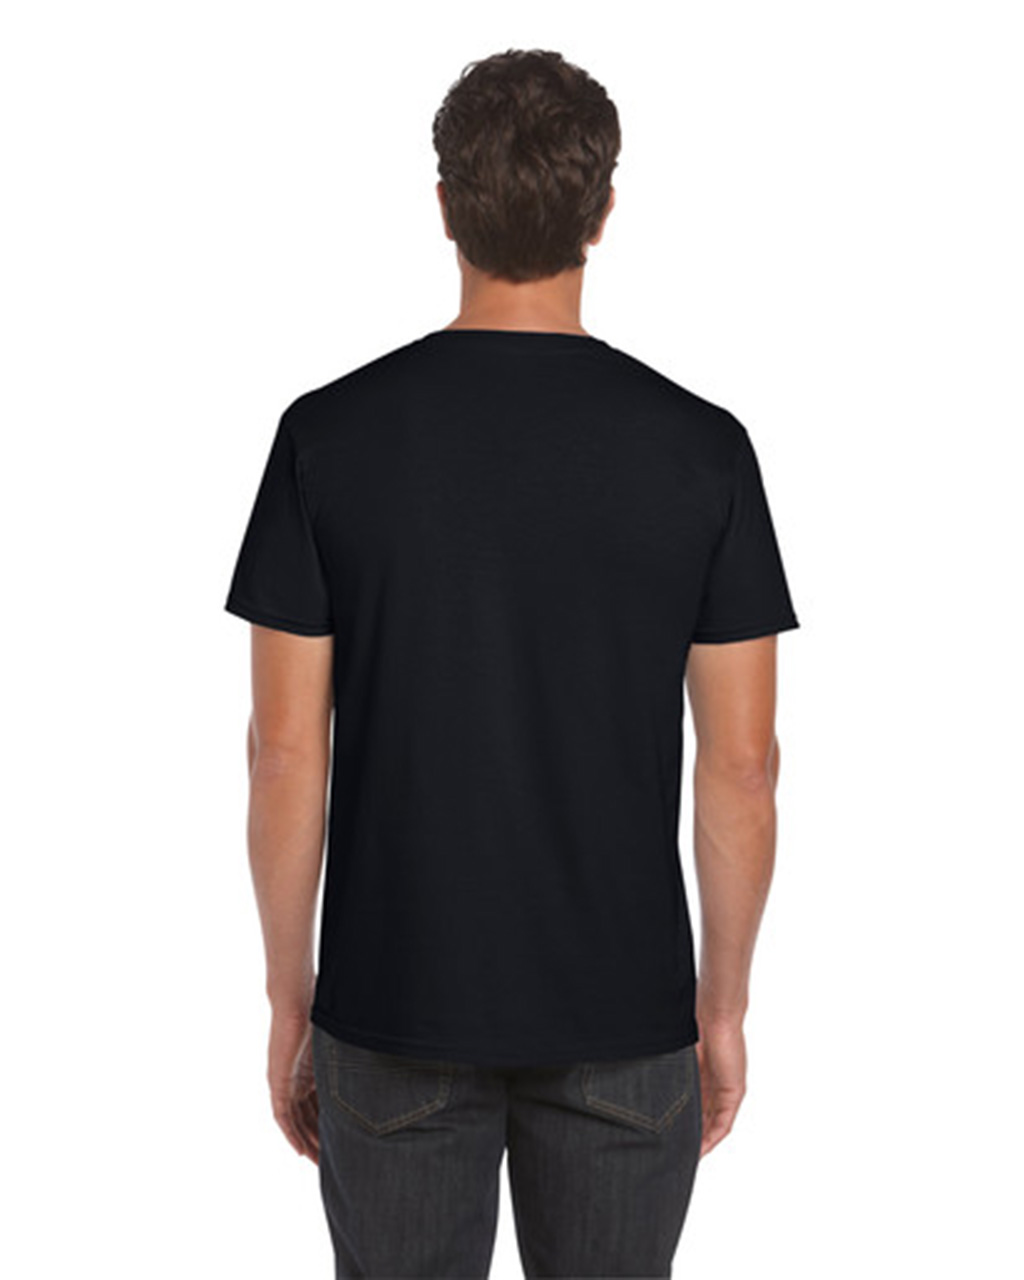 gildan black t shirt template wwwimgkidcom the image